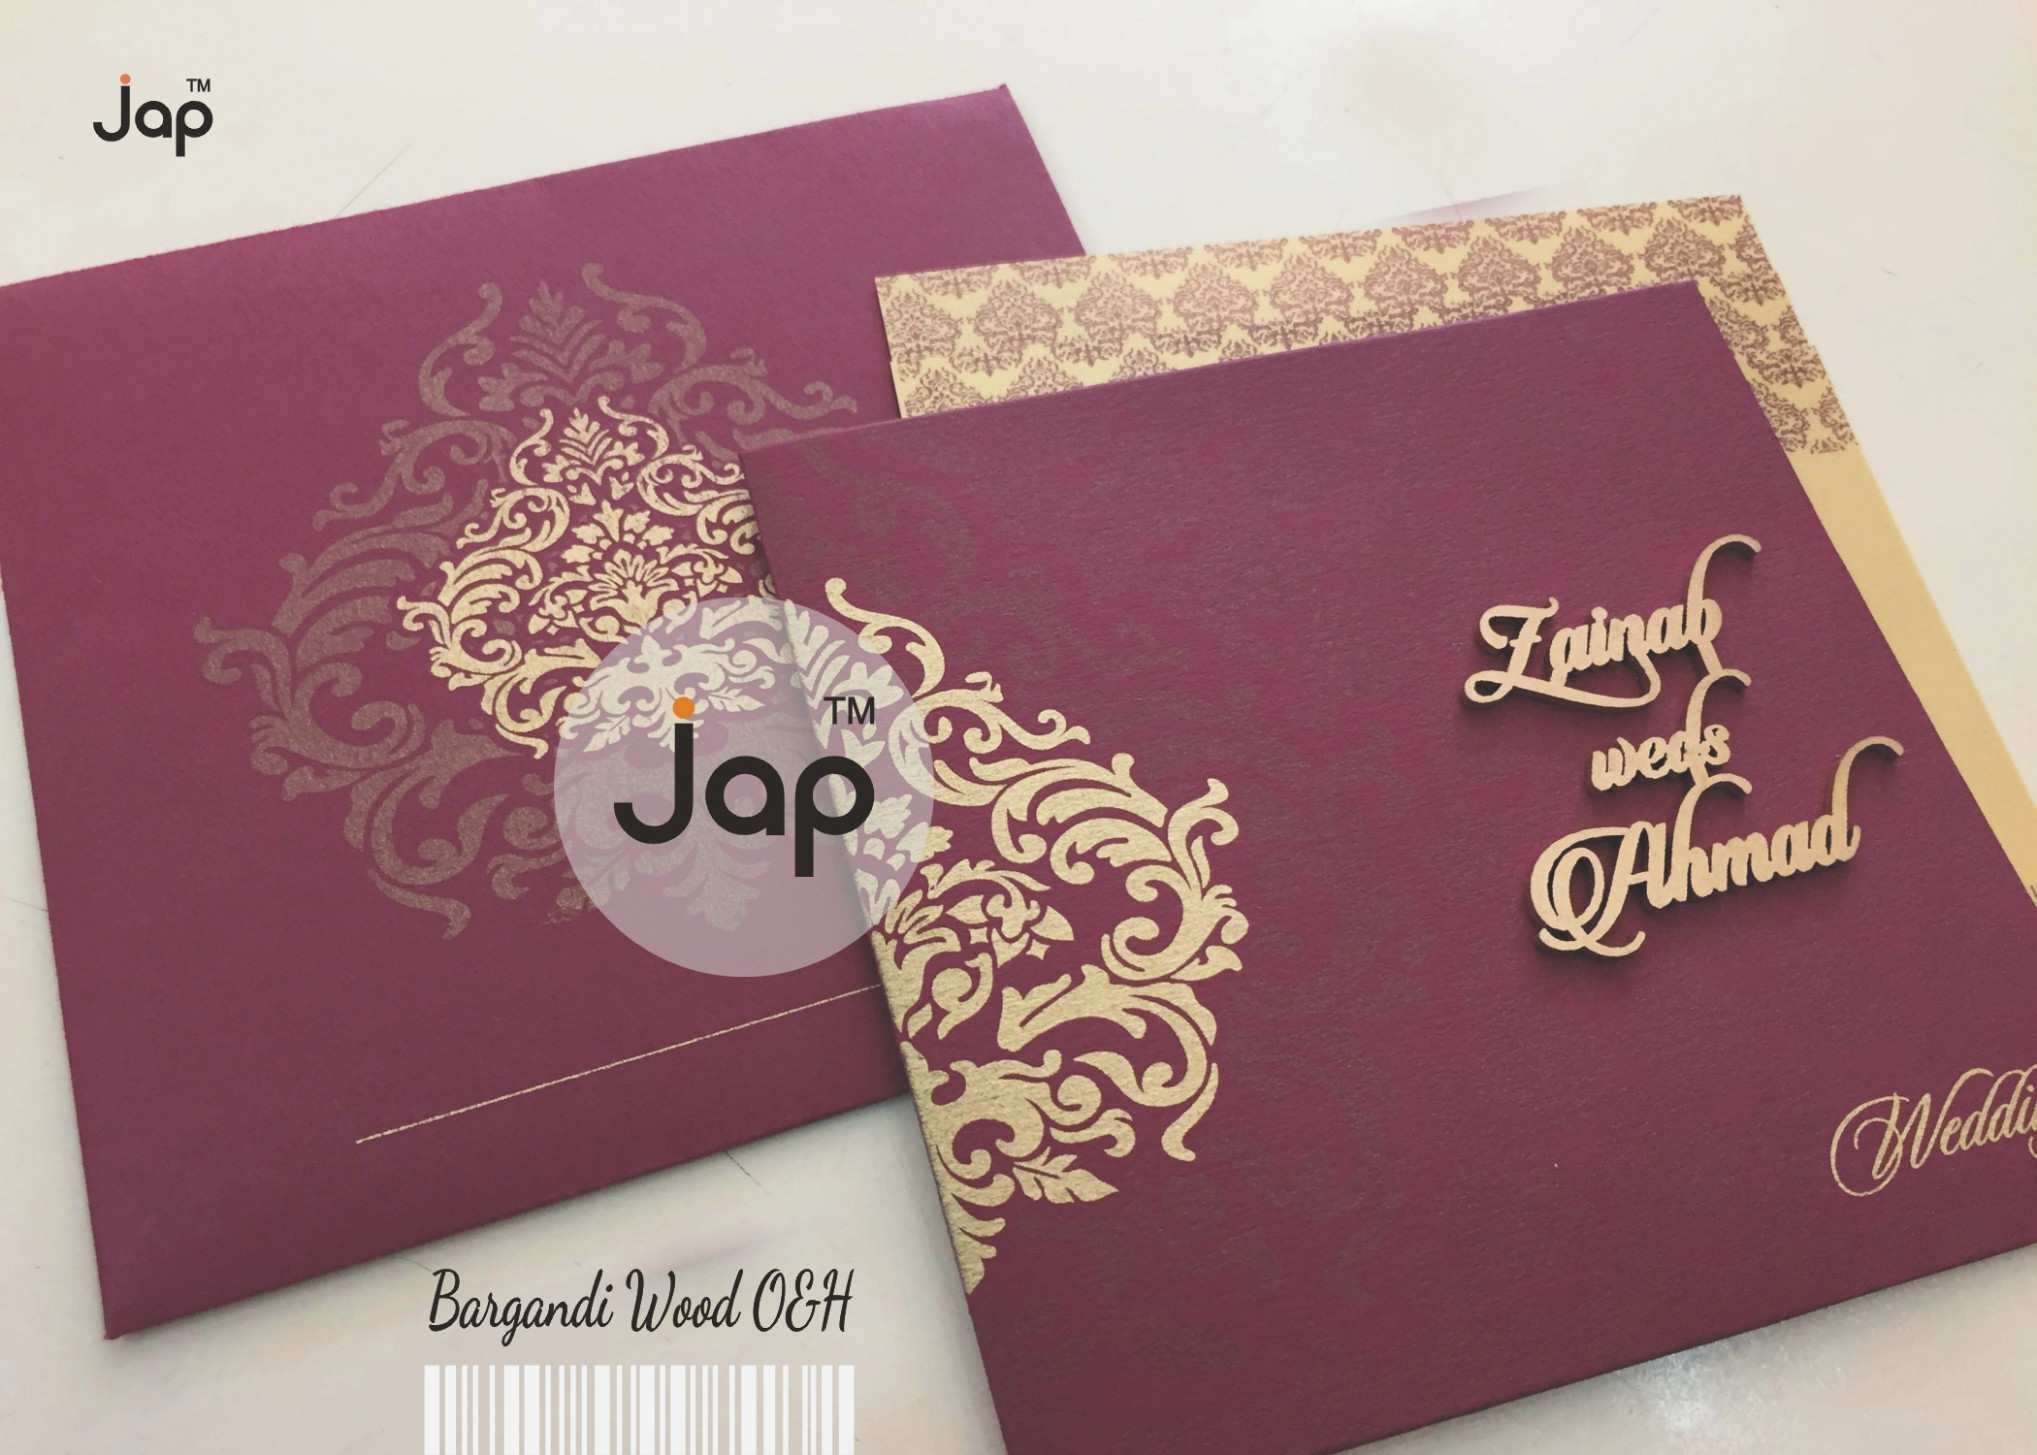 64 Best Wedding Card Templates In Pakistan For Ms Word With Wedding Card Templates In Pakistan Cards Design Templates